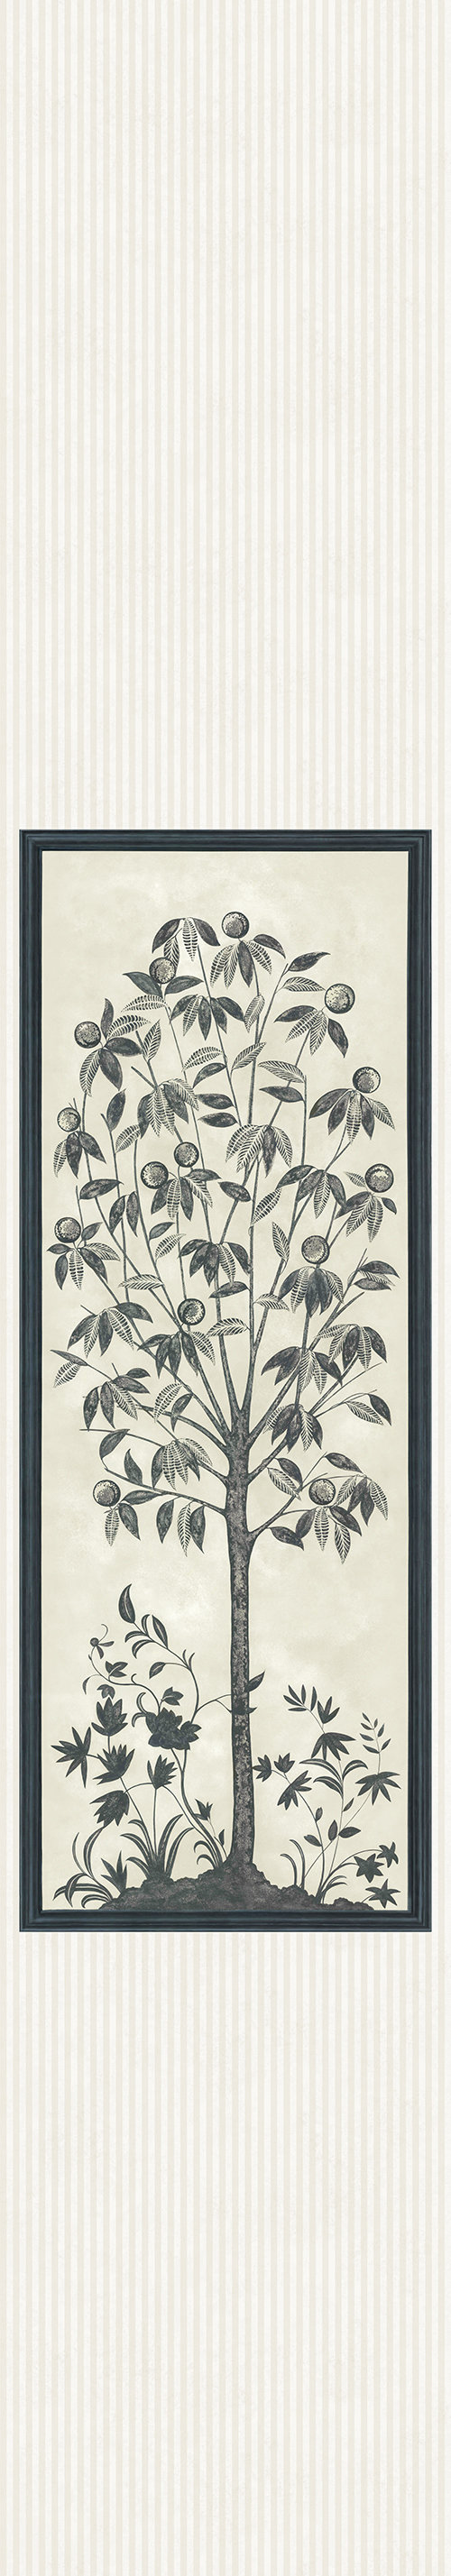 Cole & Son Trees of Eden Panel Charcoal / Parchment Mural - Product code: 113/14043